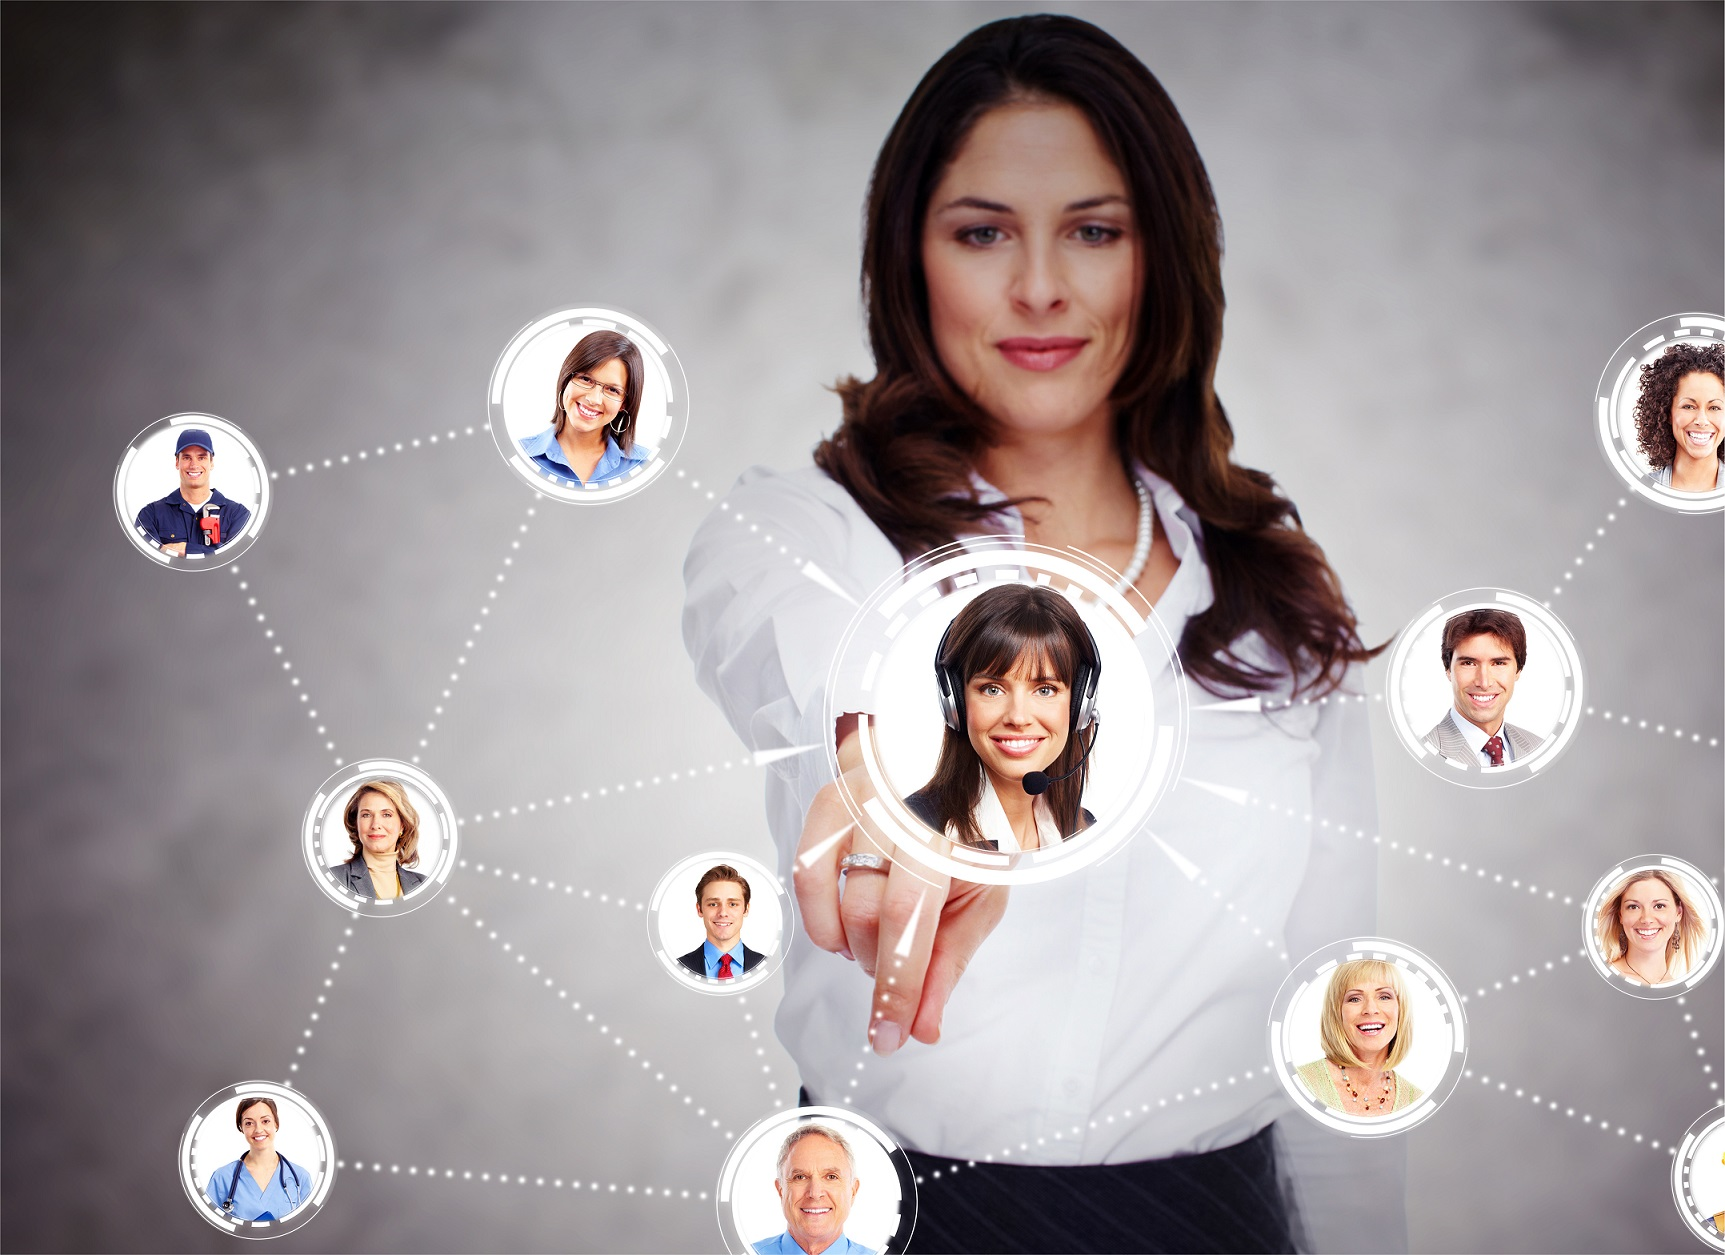 Tips for Networking for Success